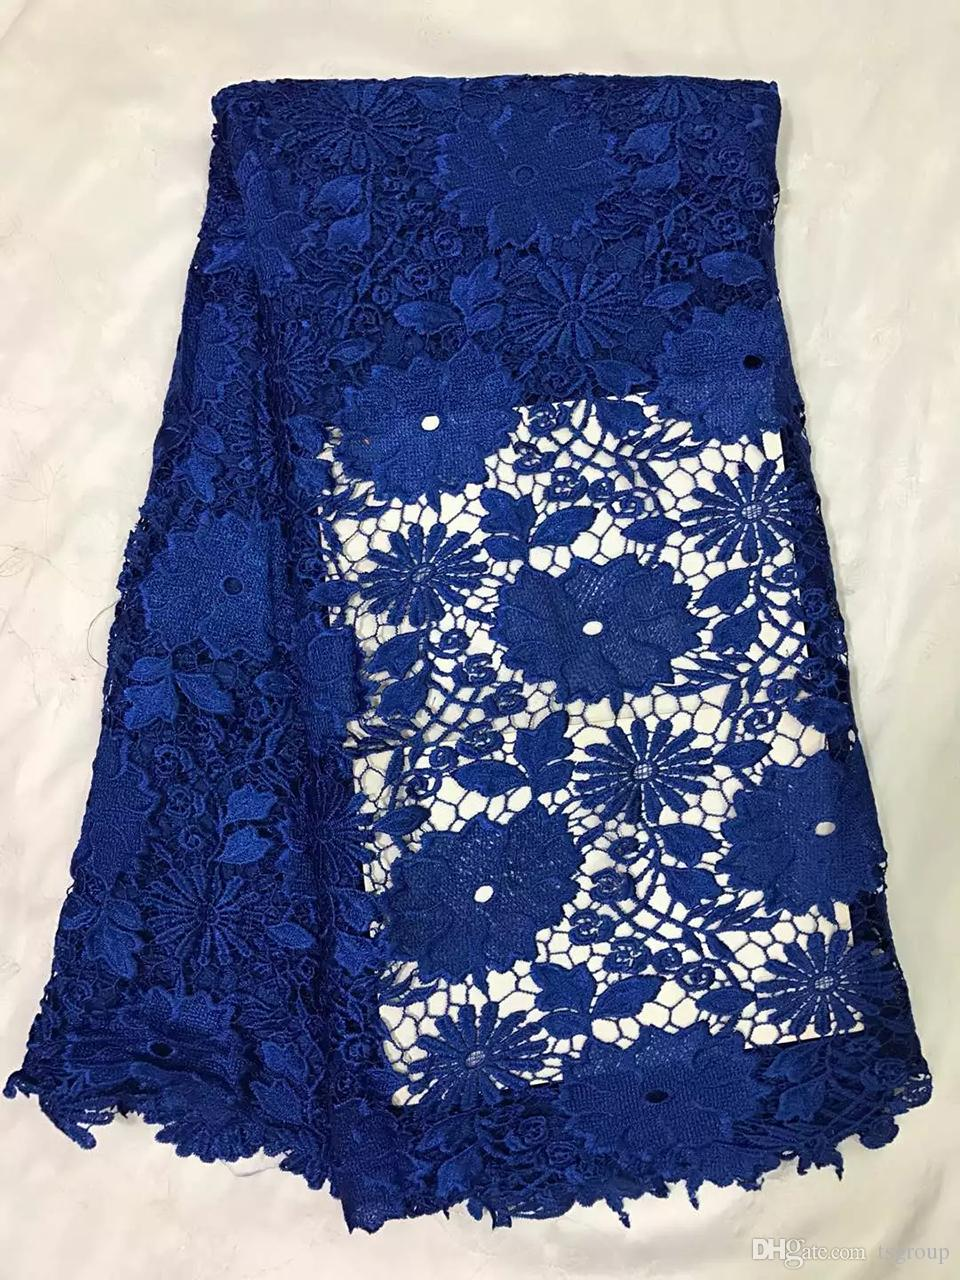 Jksr 4 Wholesale&Retail Embroidery African Guipure Lace Fabric For ...